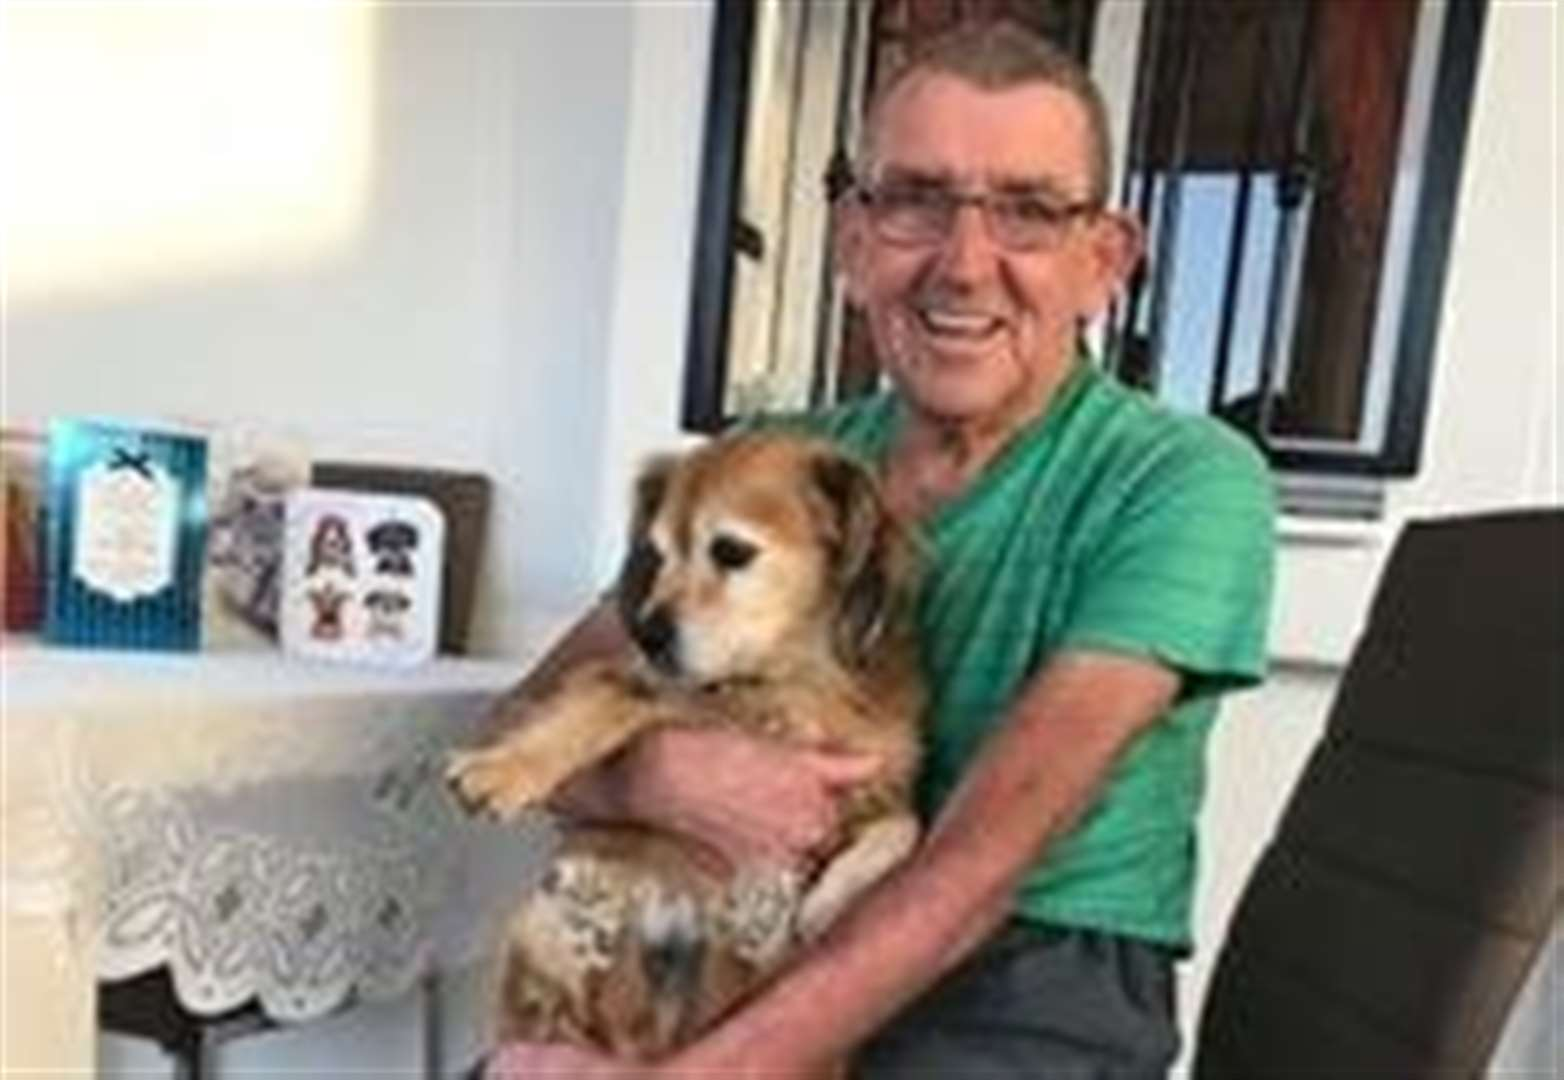 Man known as 'dog whisperer' dies, aged 83